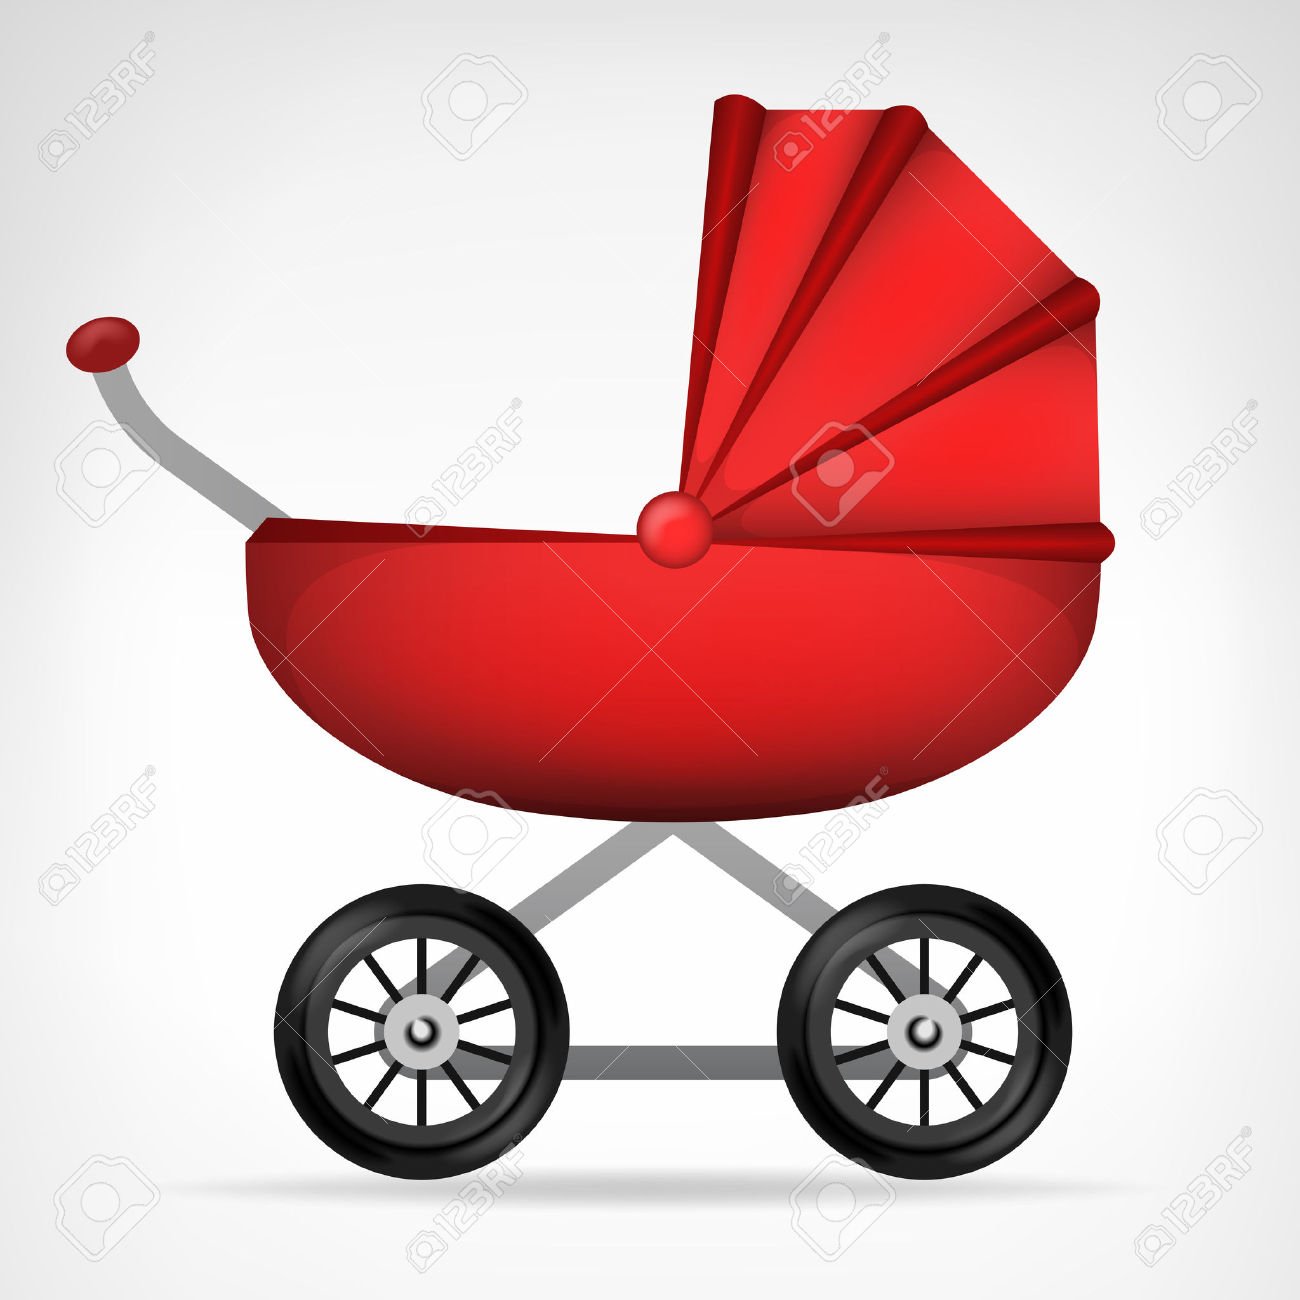 Girly Red Stroller Object On White Vector Illustration Royalty.